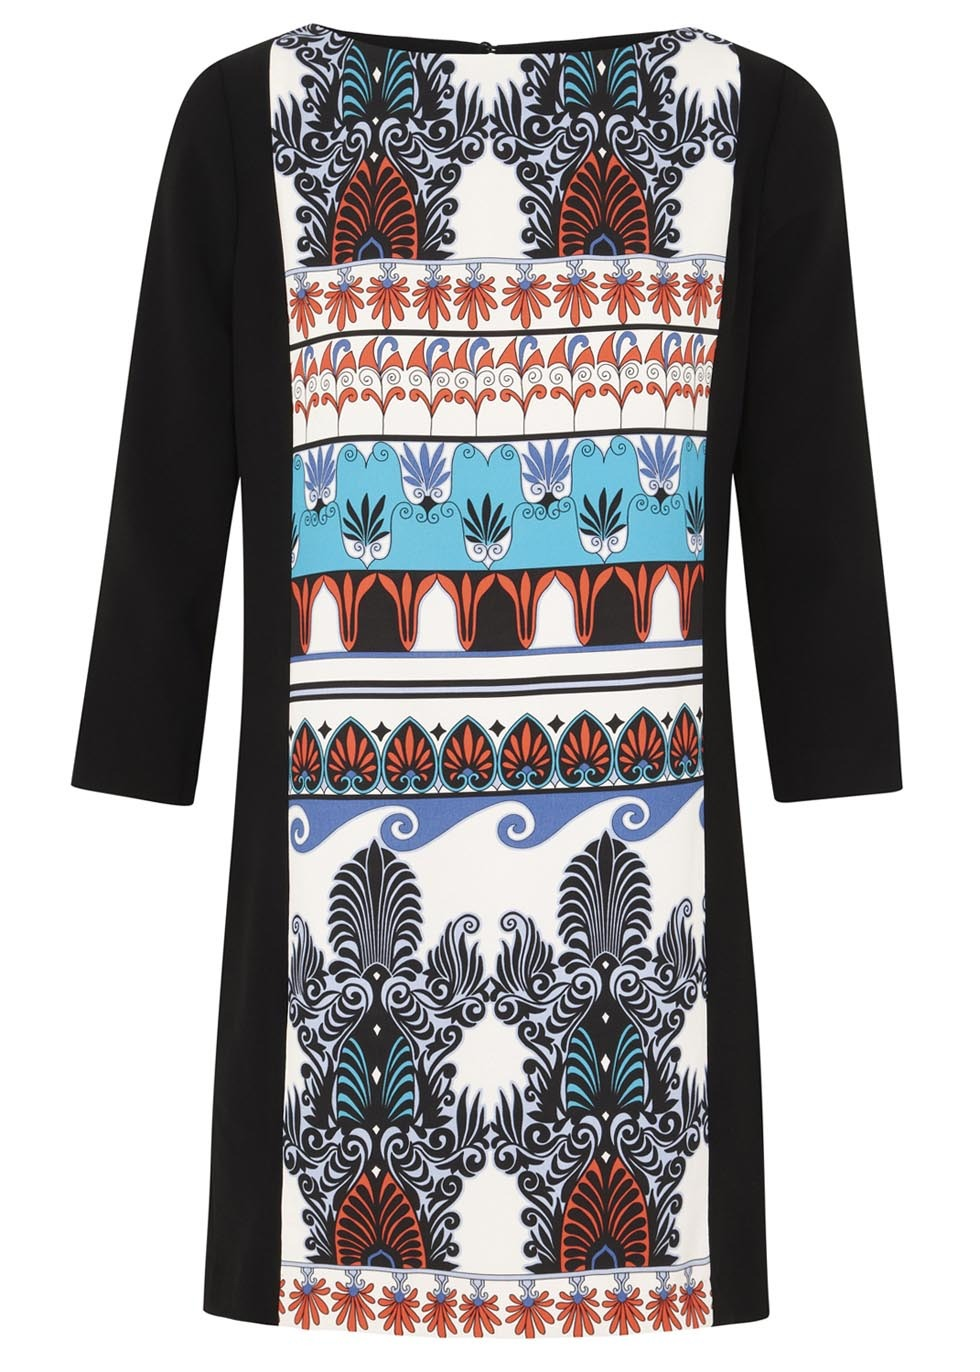 Black Printed Crepe Mini Dress Size - style: shift; length: mini; neckline: slash/boat neckline; secondary colour: white; predominant colour: black; occasions: casual; fit: soft a-line; fibres: polyester/polyamide - 100%; back detail: keyhole/peephole detail at back; sleeve length: 3/4 length; sleeve style: standard; texture group: crepes; pattern type: fabric; pattern size: big & busy; pattern: patterned/print; season: s/s 2014